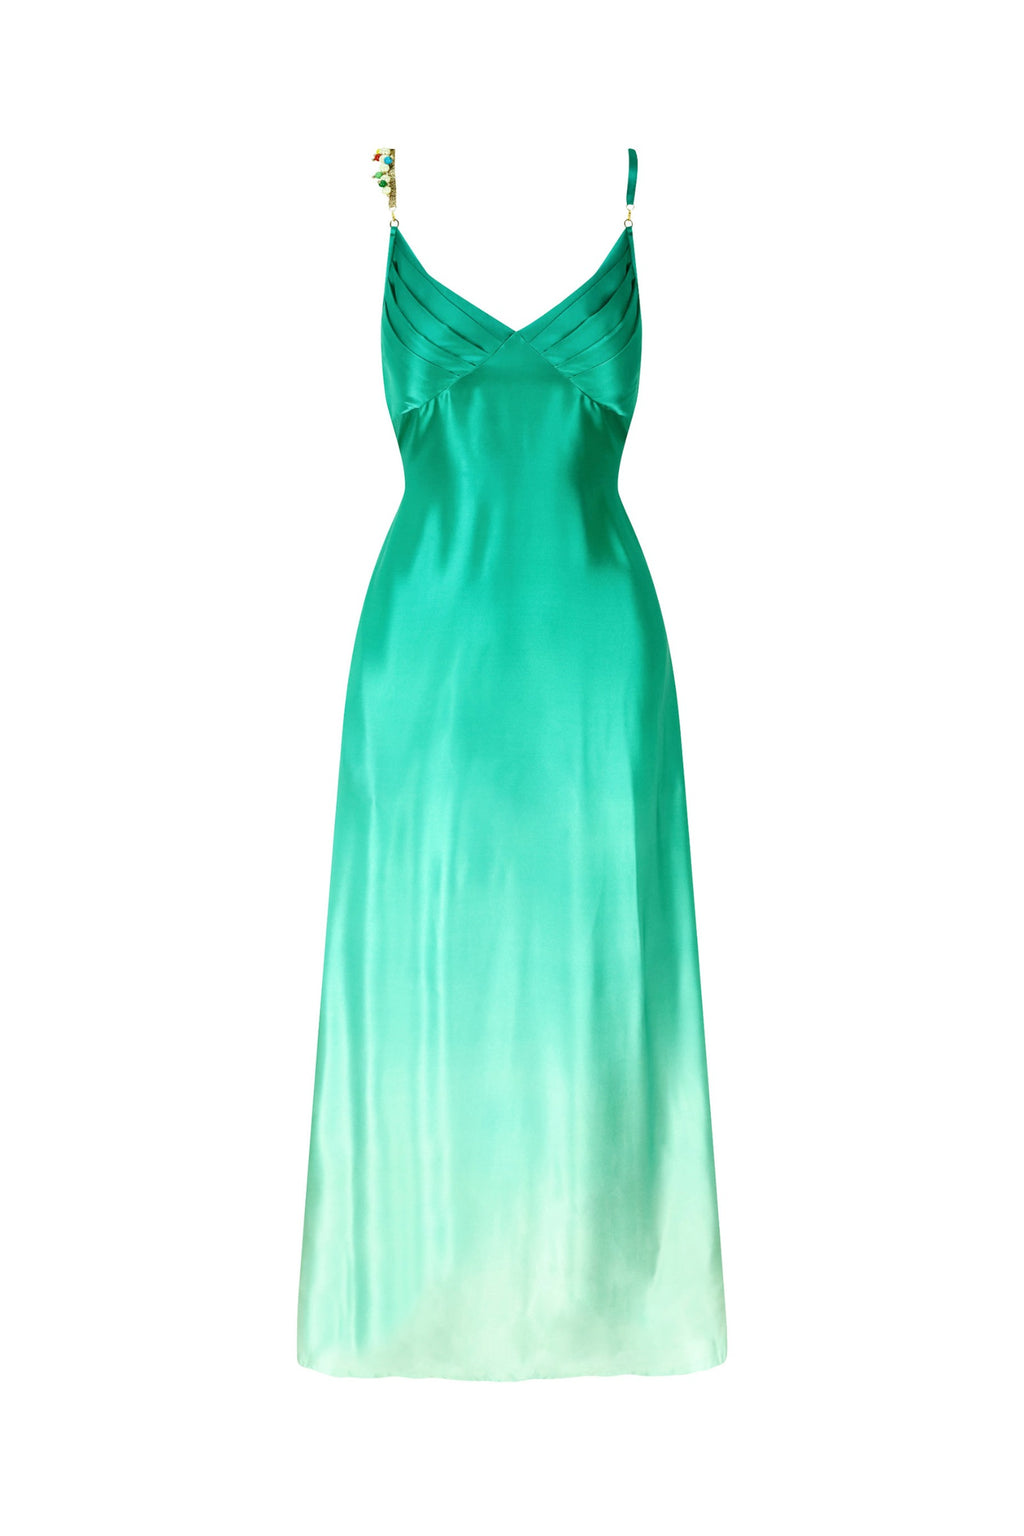 EDINA SOFT GREEN BEADED SILK MAXI DRESS